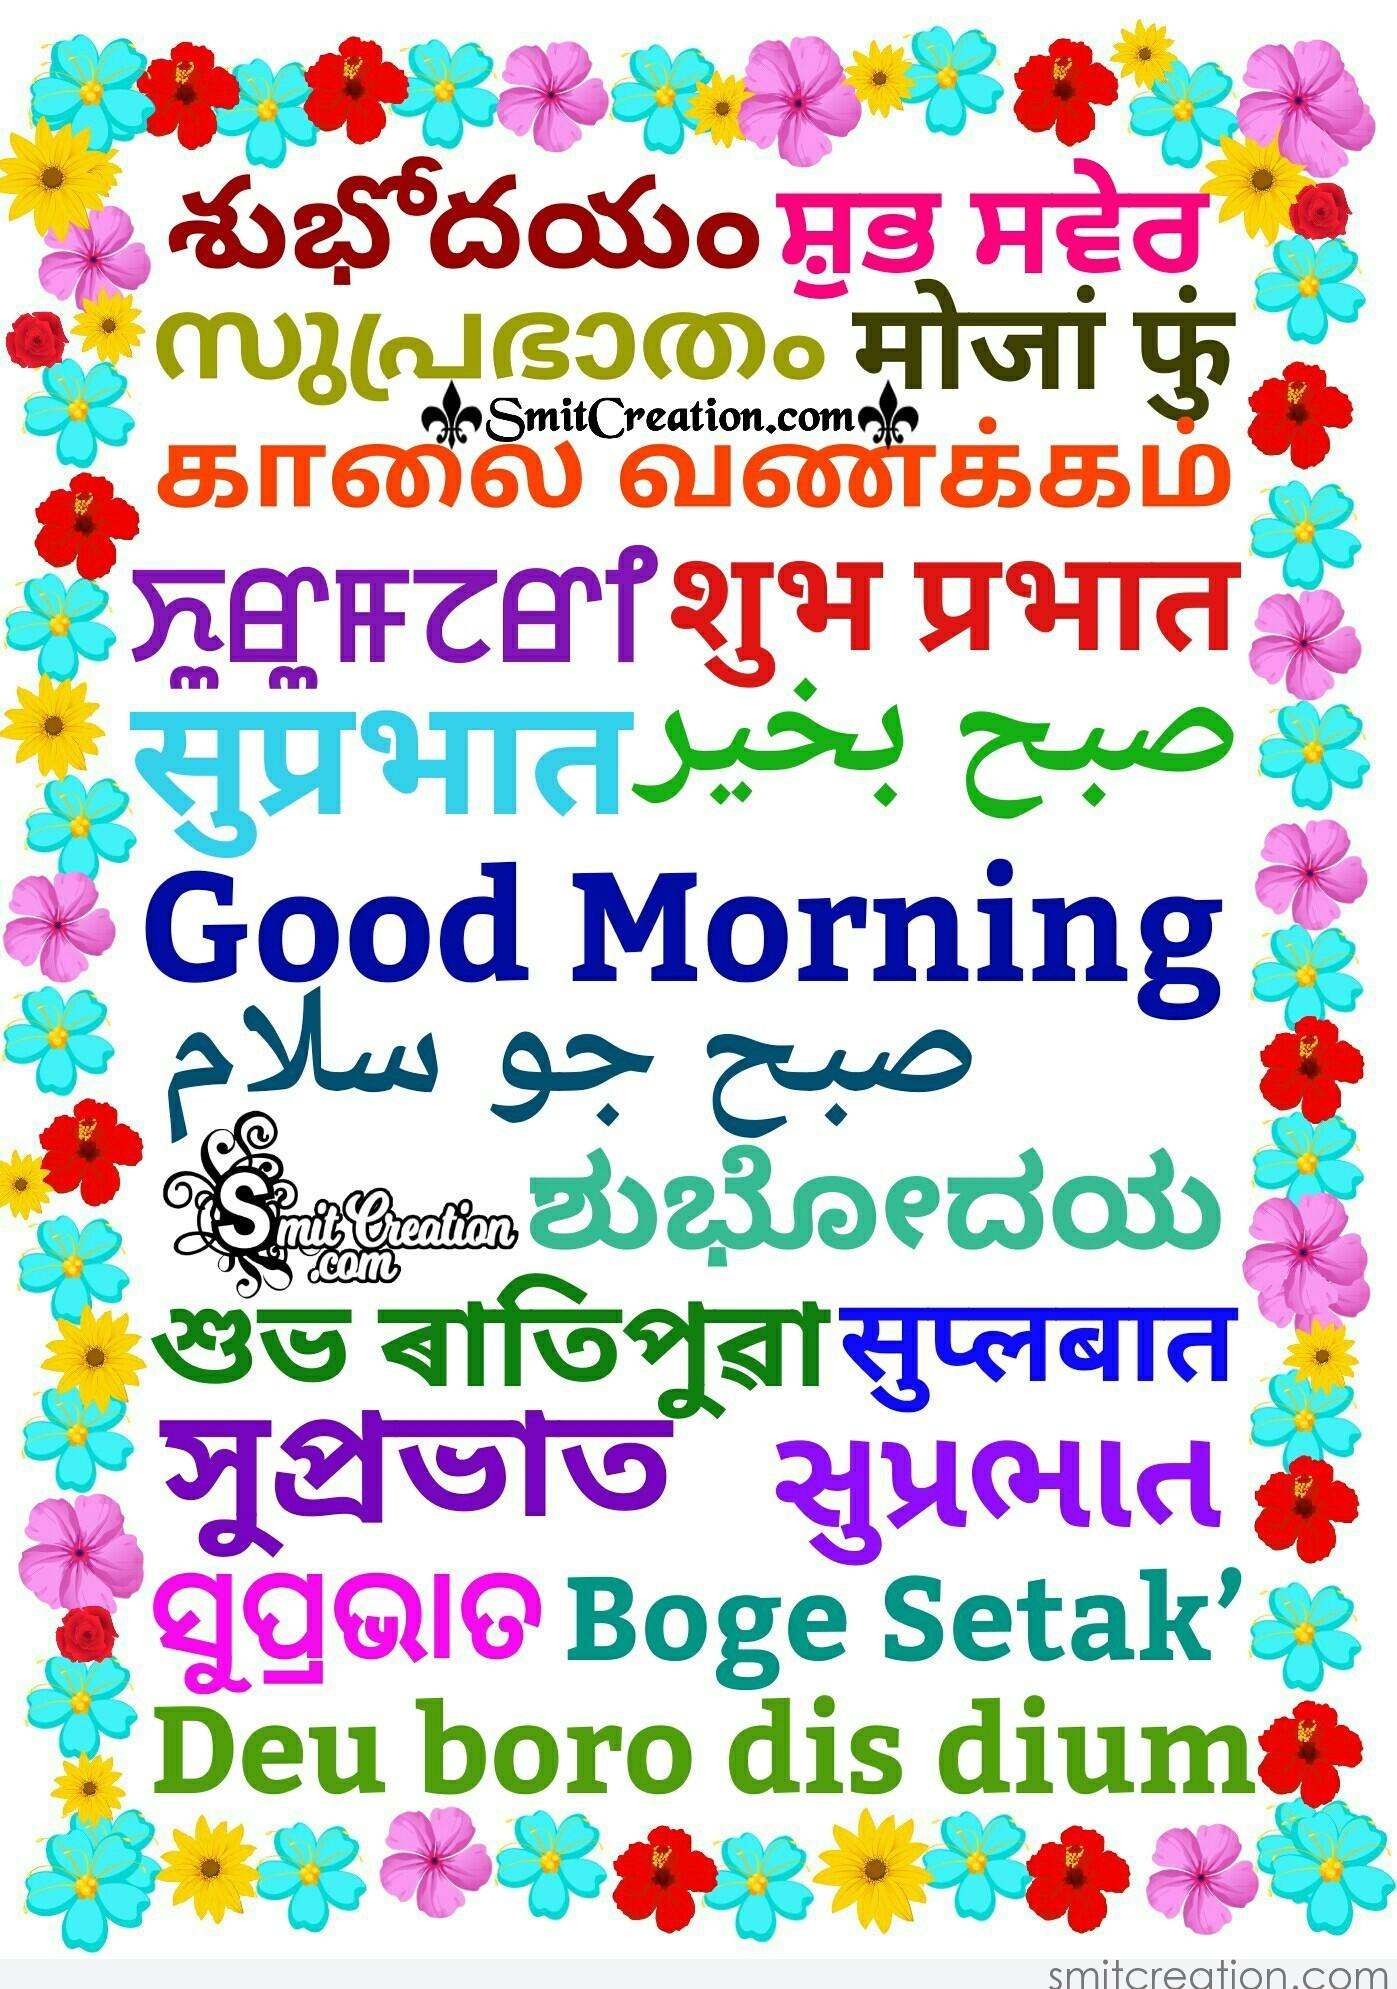 Good Morning in different Indian languages - SmitCreation.com